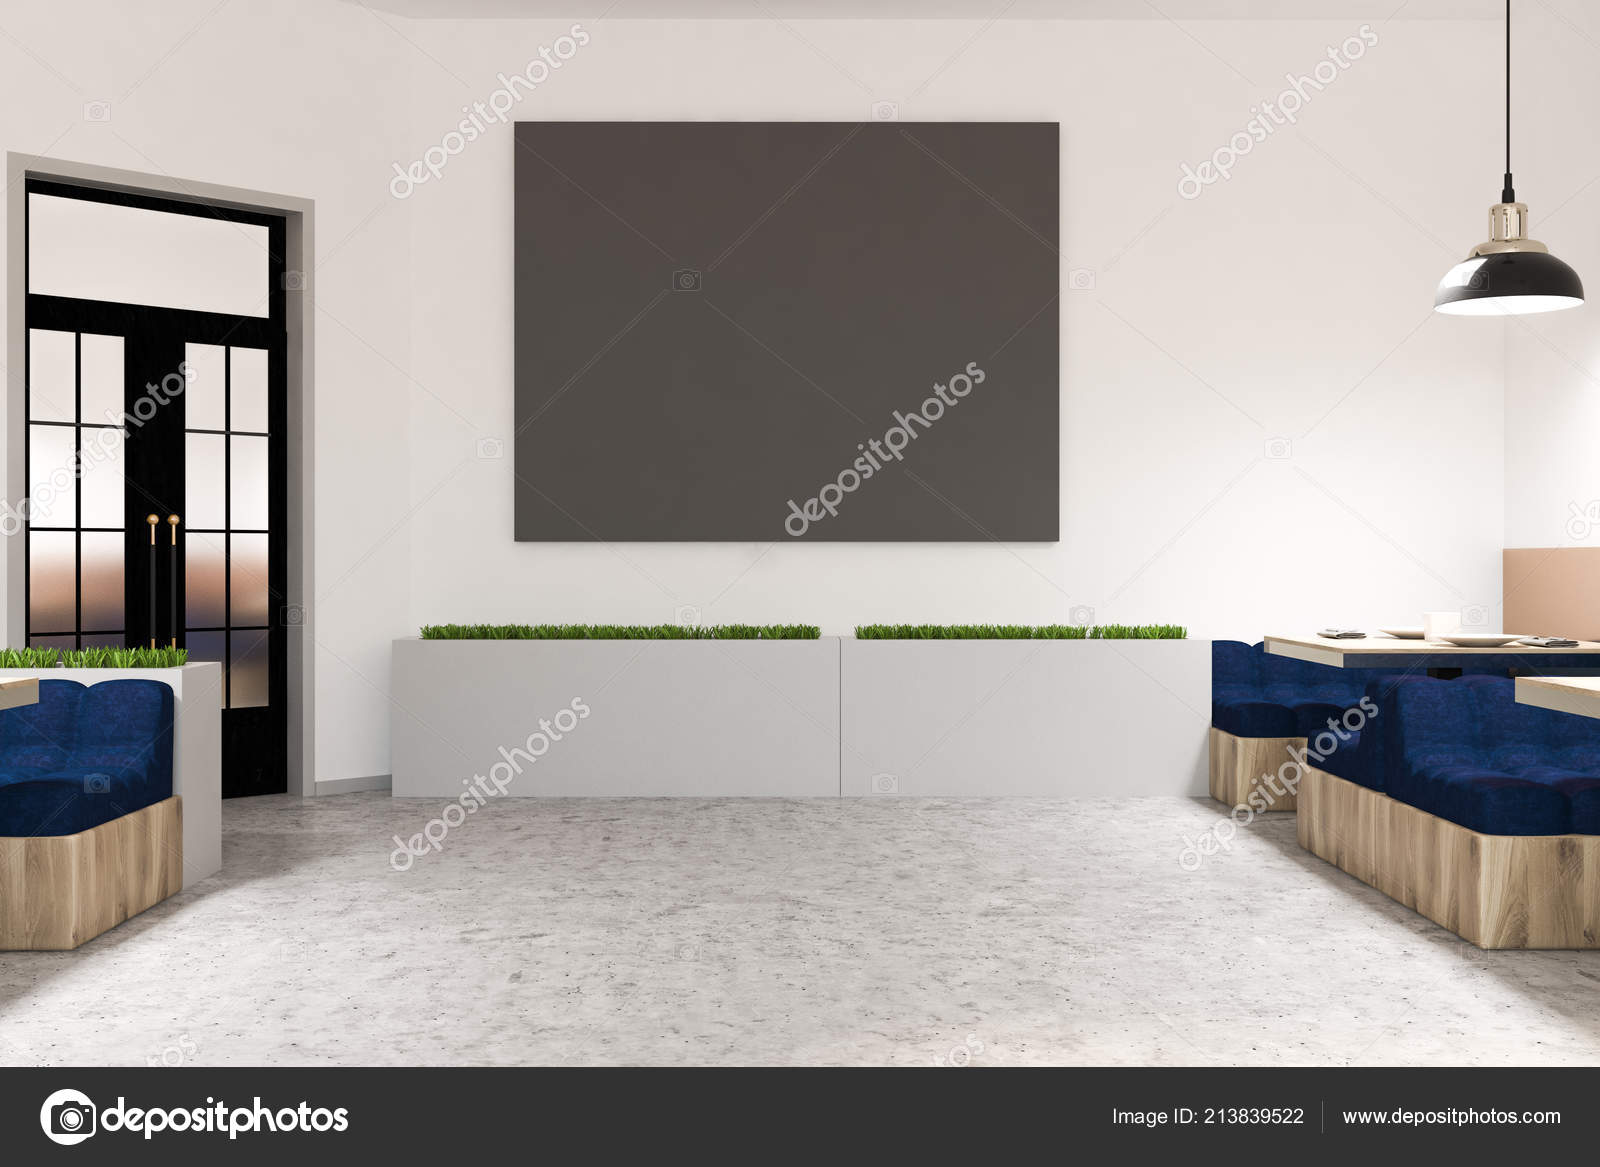 Comfortable Cafe Interior White Walls Marble Floor Square Tables Soft Stock Photo C Denisismagilov 213839522